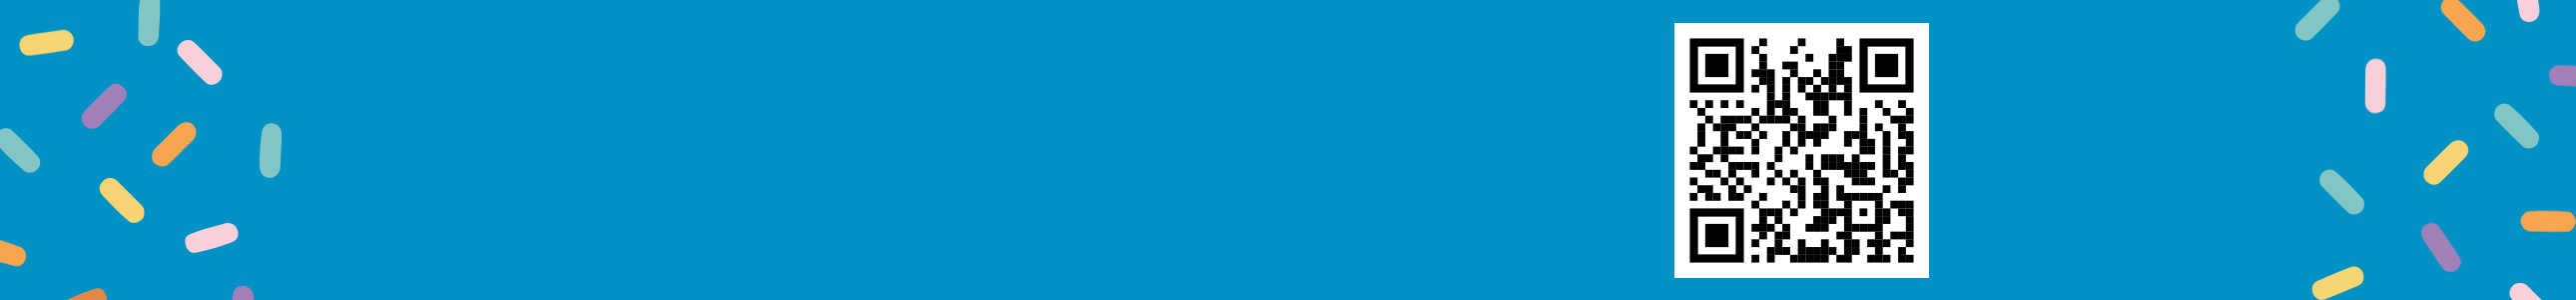 Aqua banner with sprinkles.